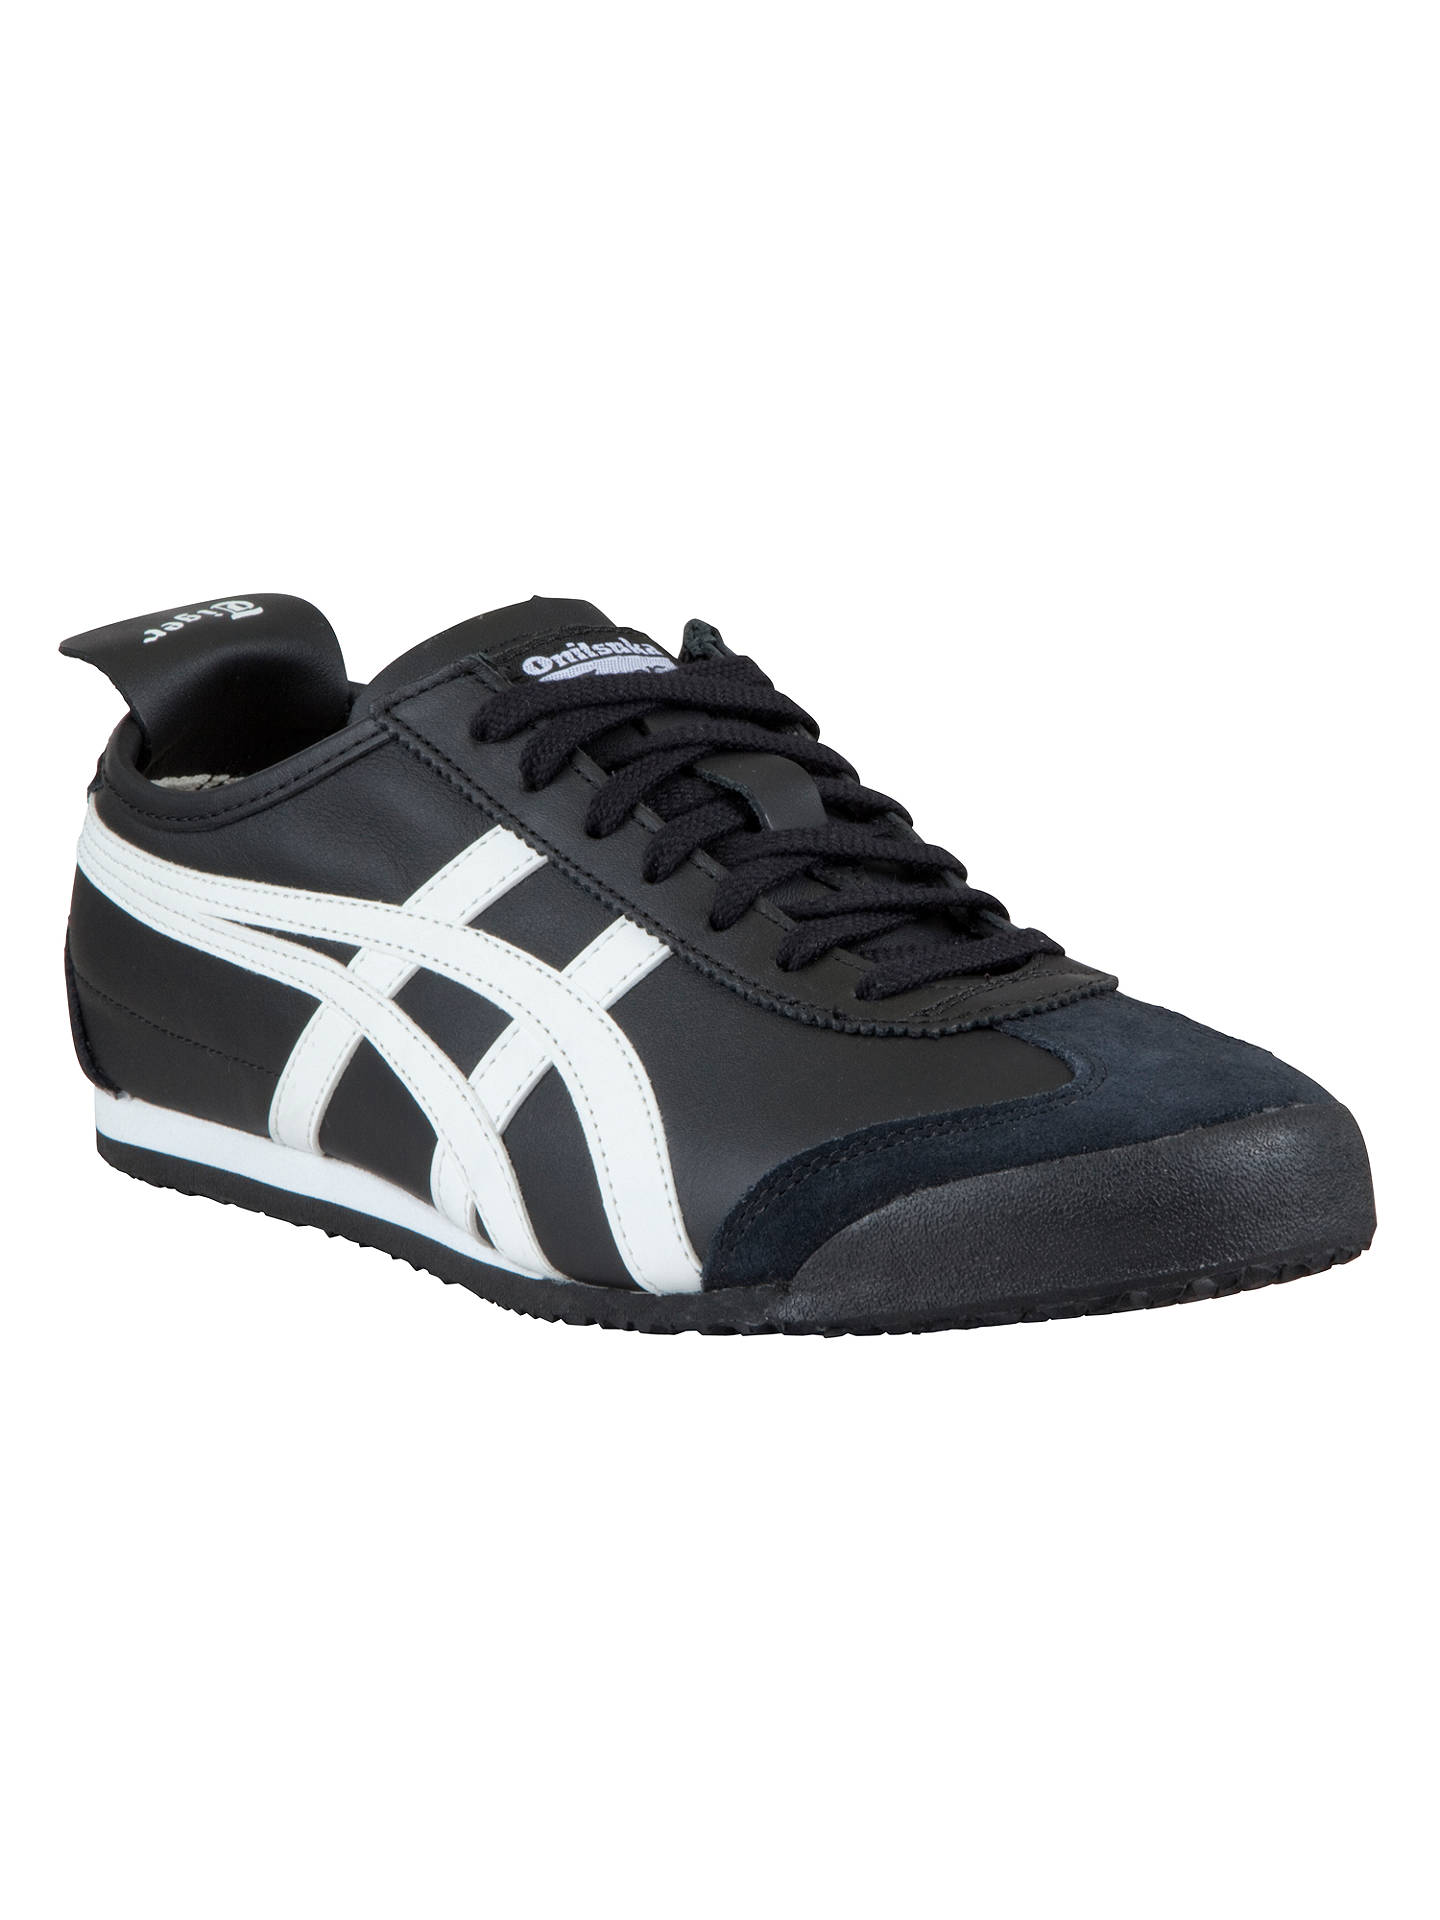 timeless design 133a2 6a735 Onitsuka Tiger Mexico 66 Men's Trainers, Black/White at John ...